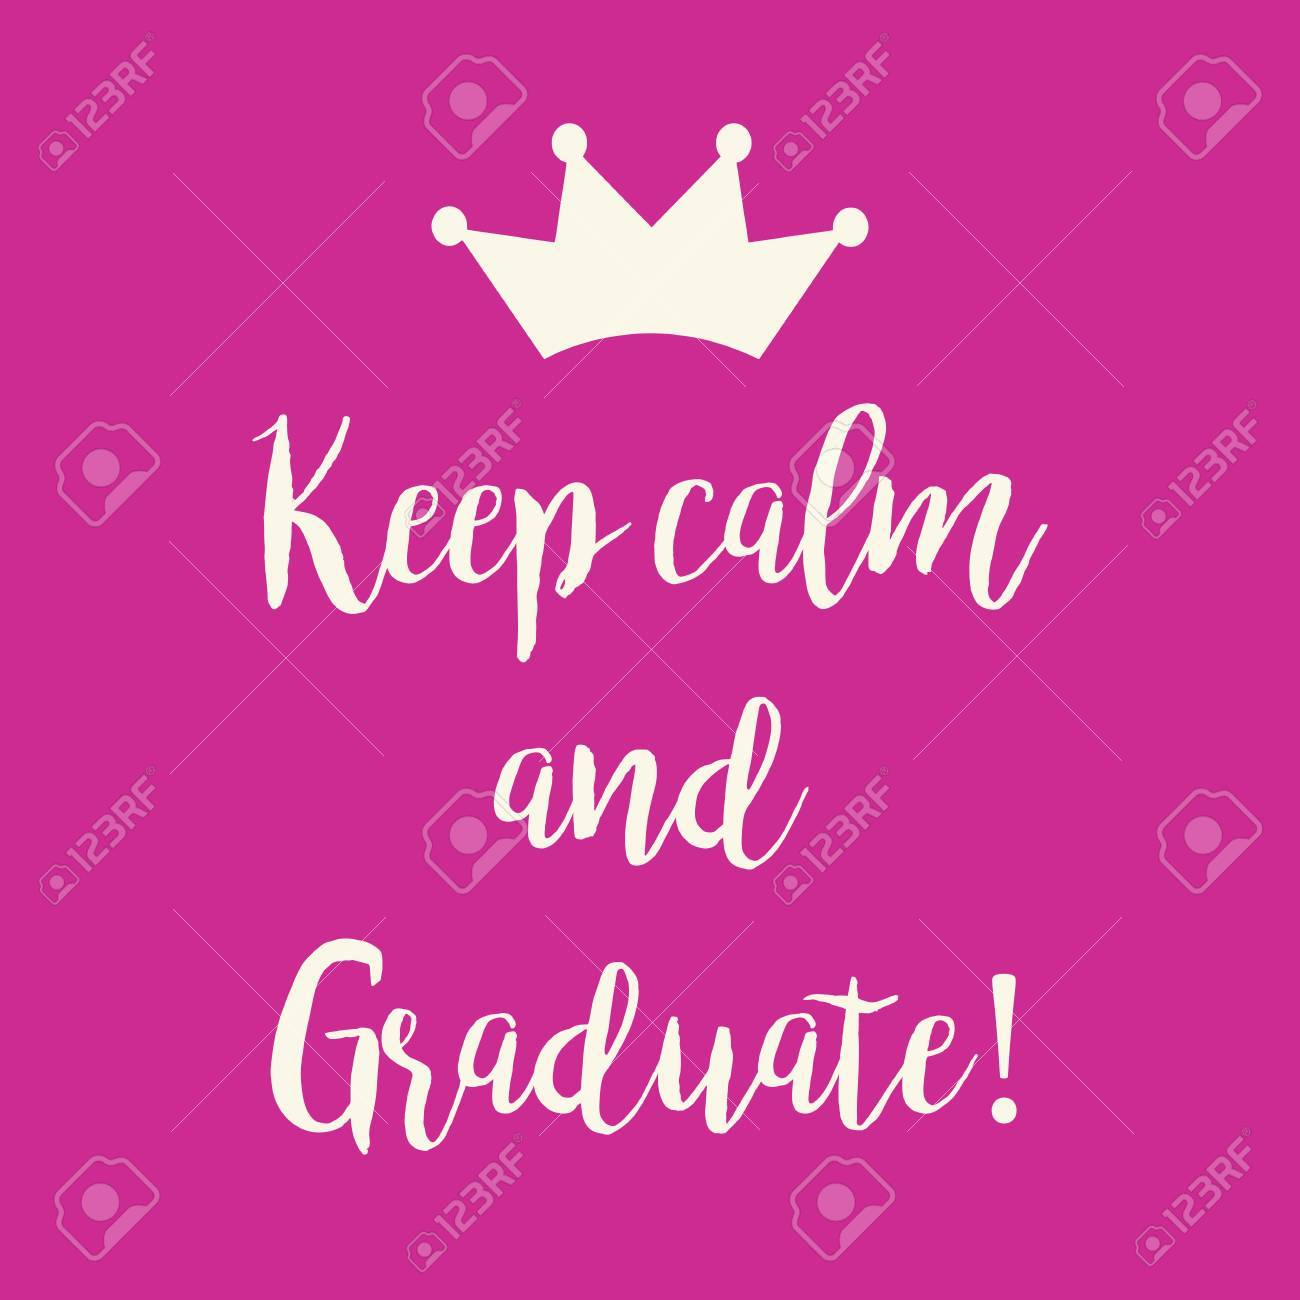 cute pink keep calm and graduate greeting card with a crown royalty